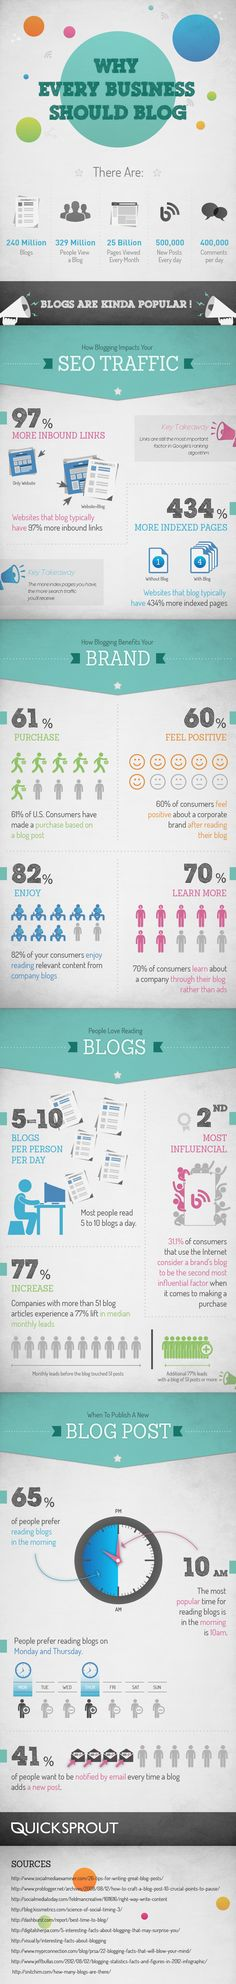 Why Every Business Should Blog   #Infographic #Business #Blog